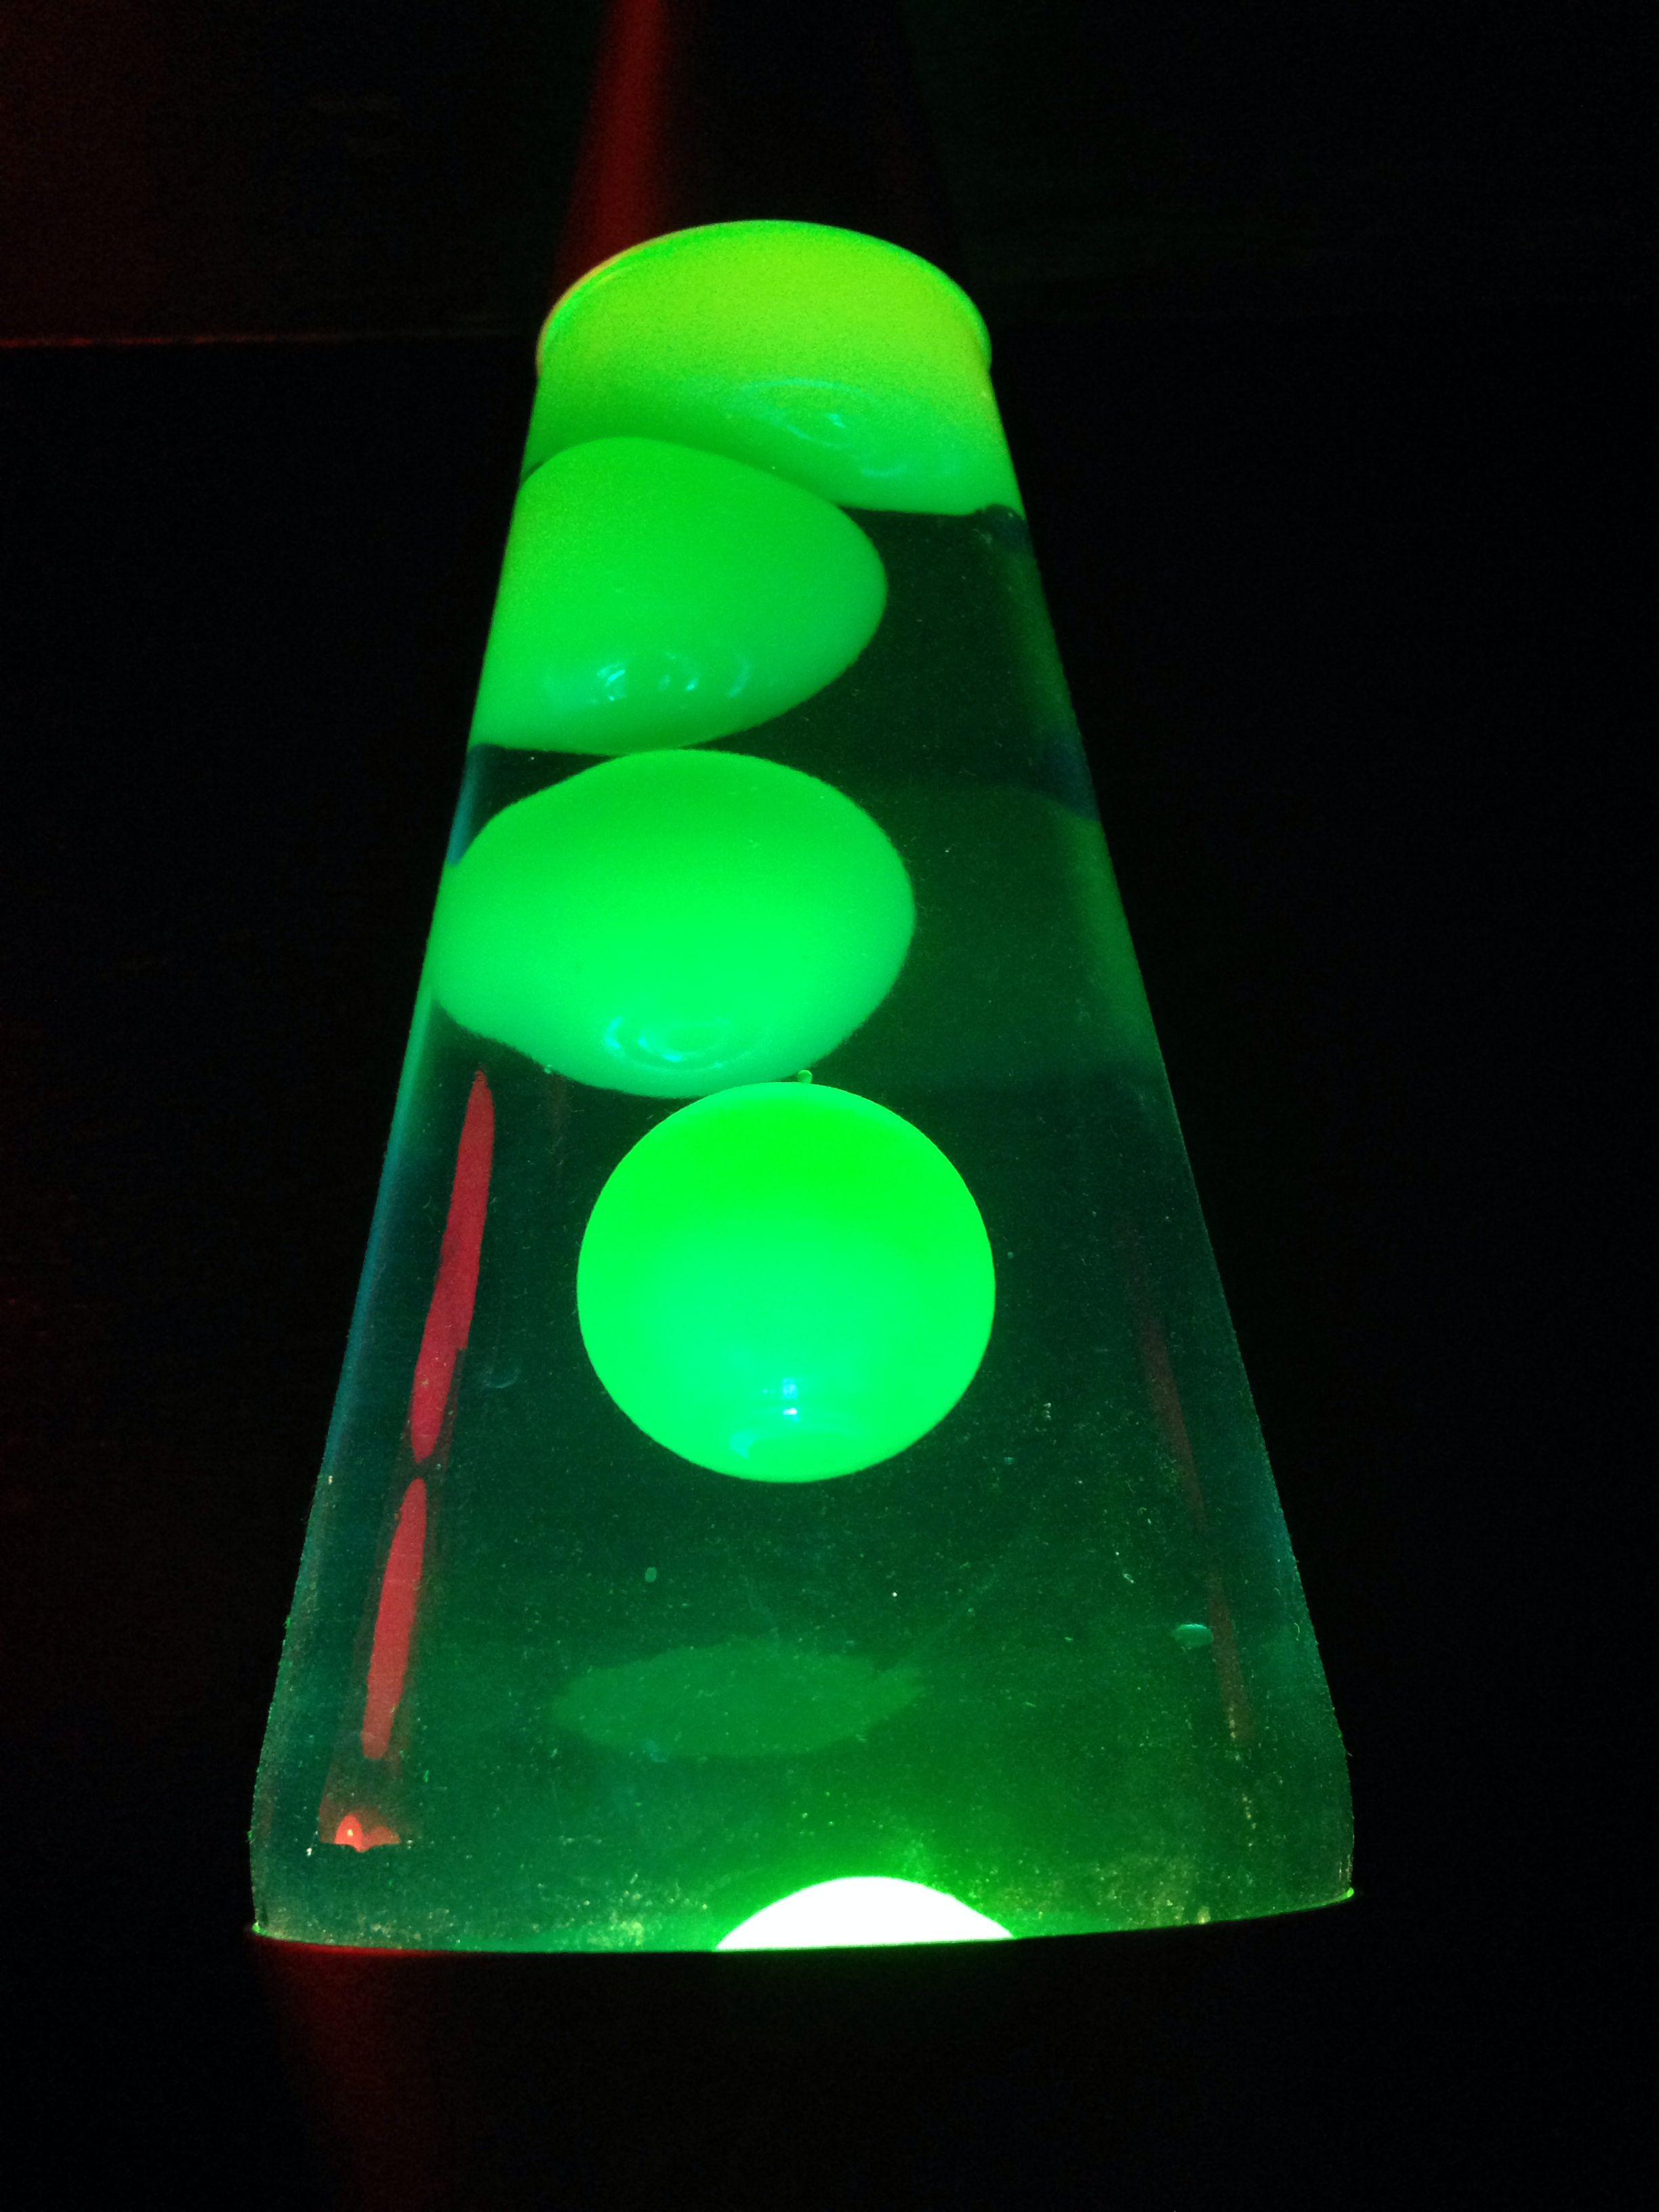 14 inch lava lamp. Blue liquid, green wax. Lava lamp